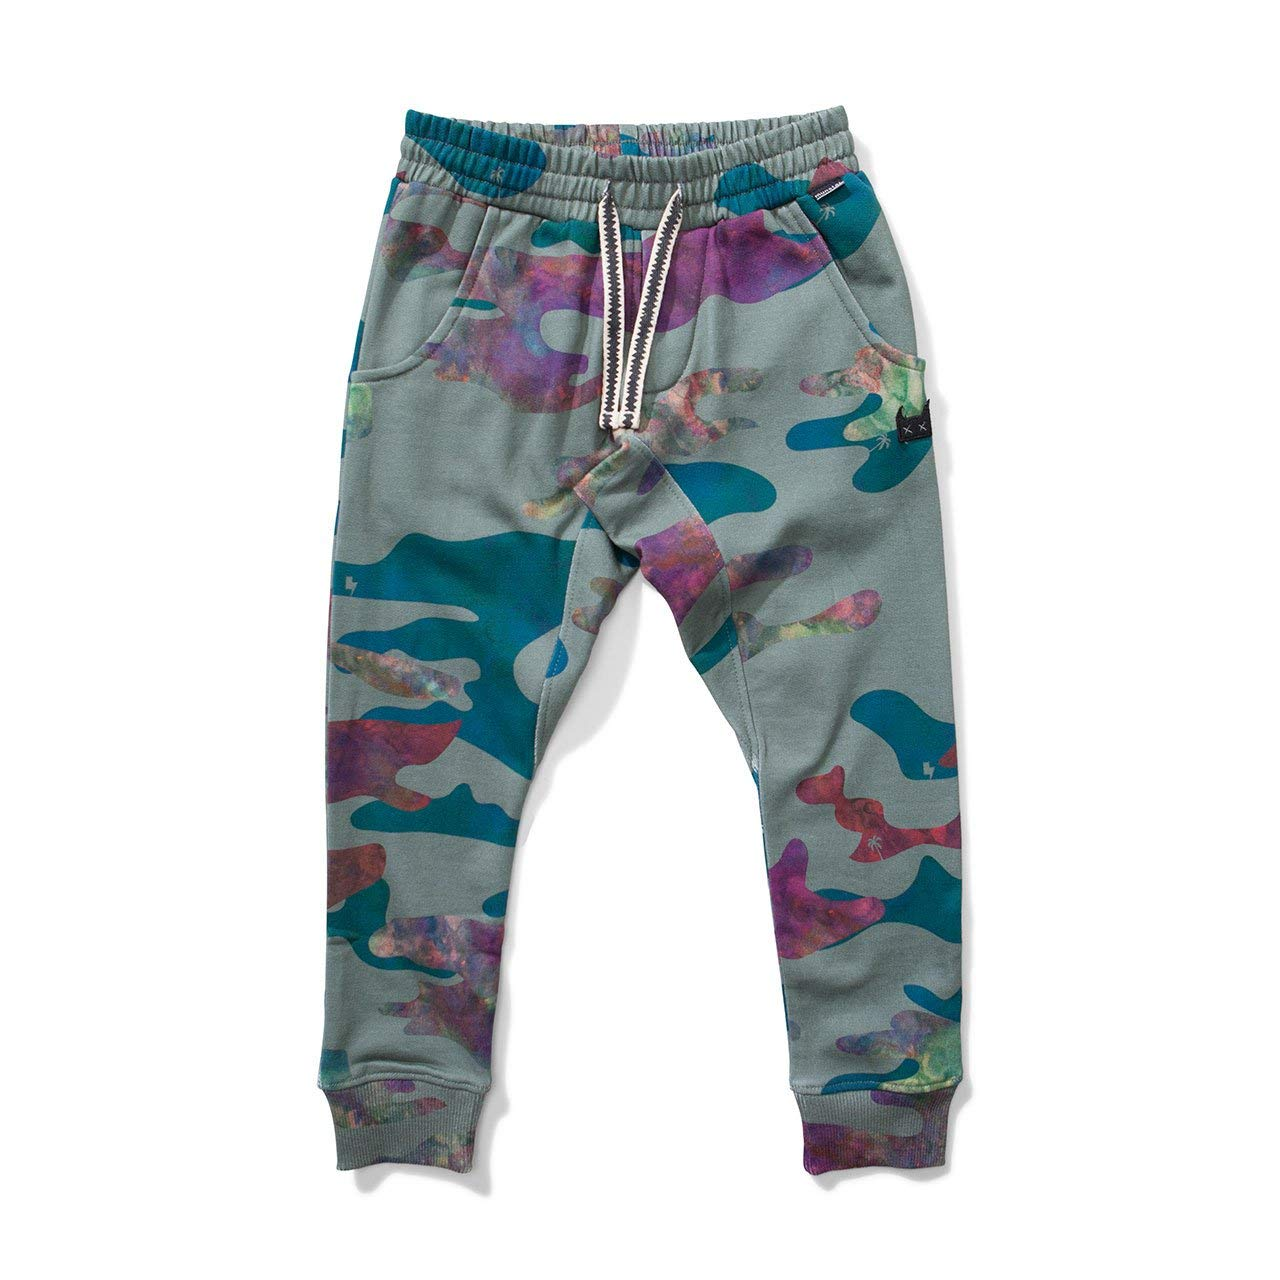 Toddler Boys Hideaway Pant Camouflage Munster Kids Munster Size 5